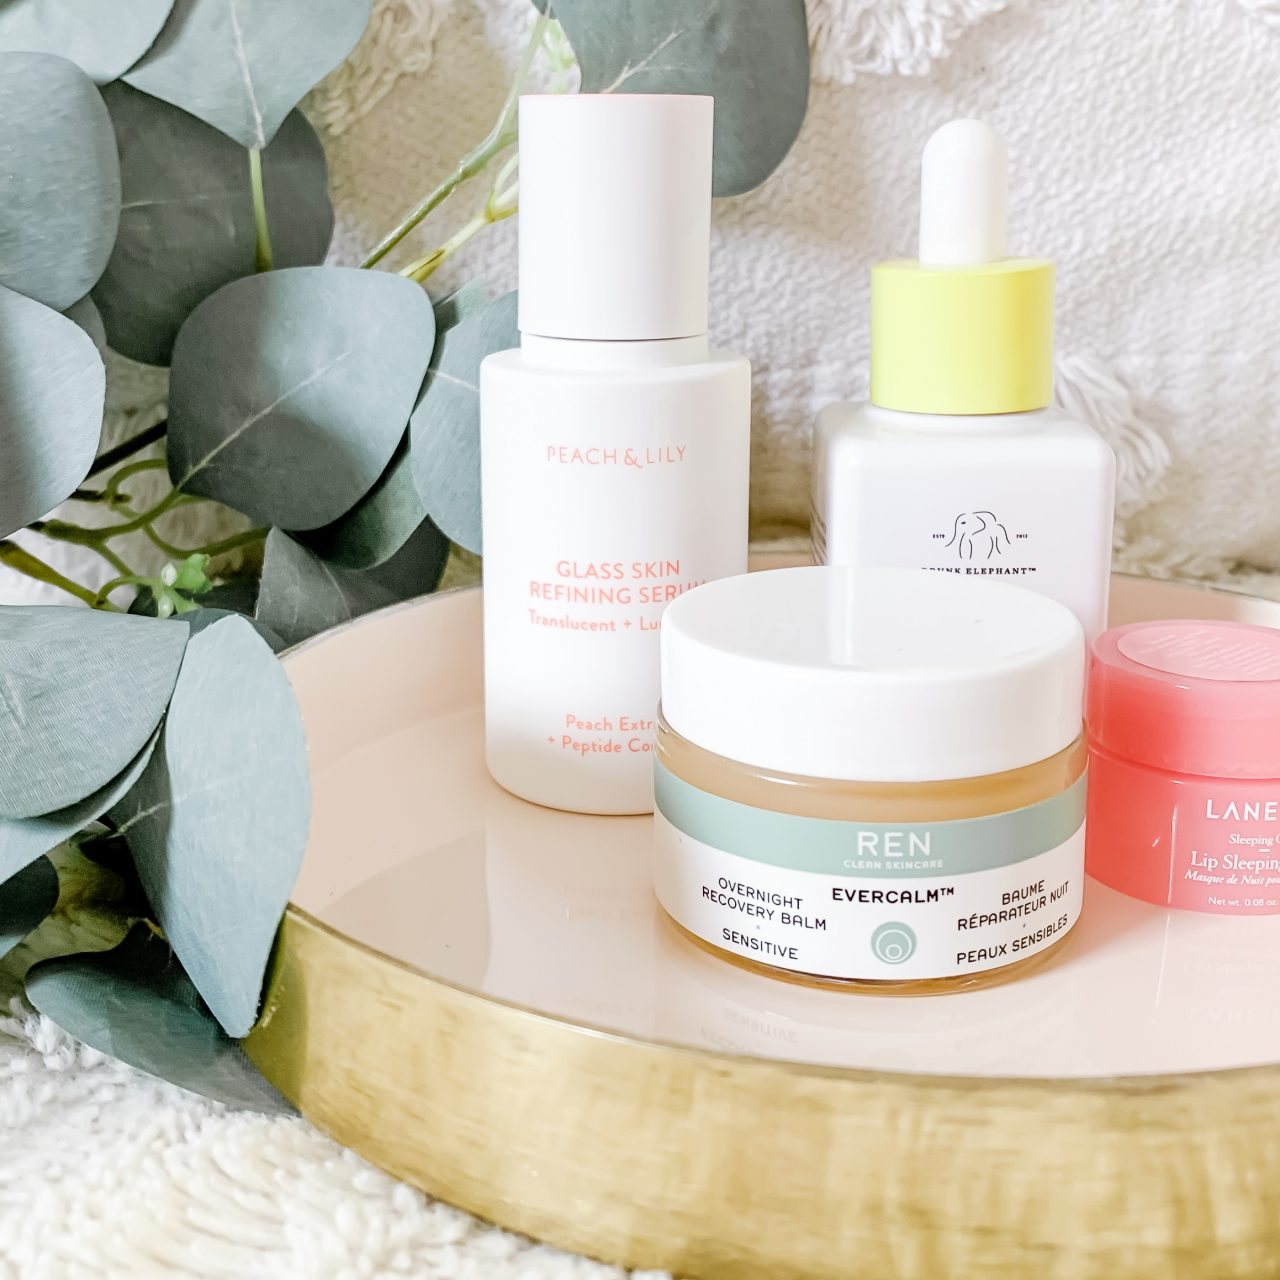 THE BEST WINTER SKINCARE PRODUCTS